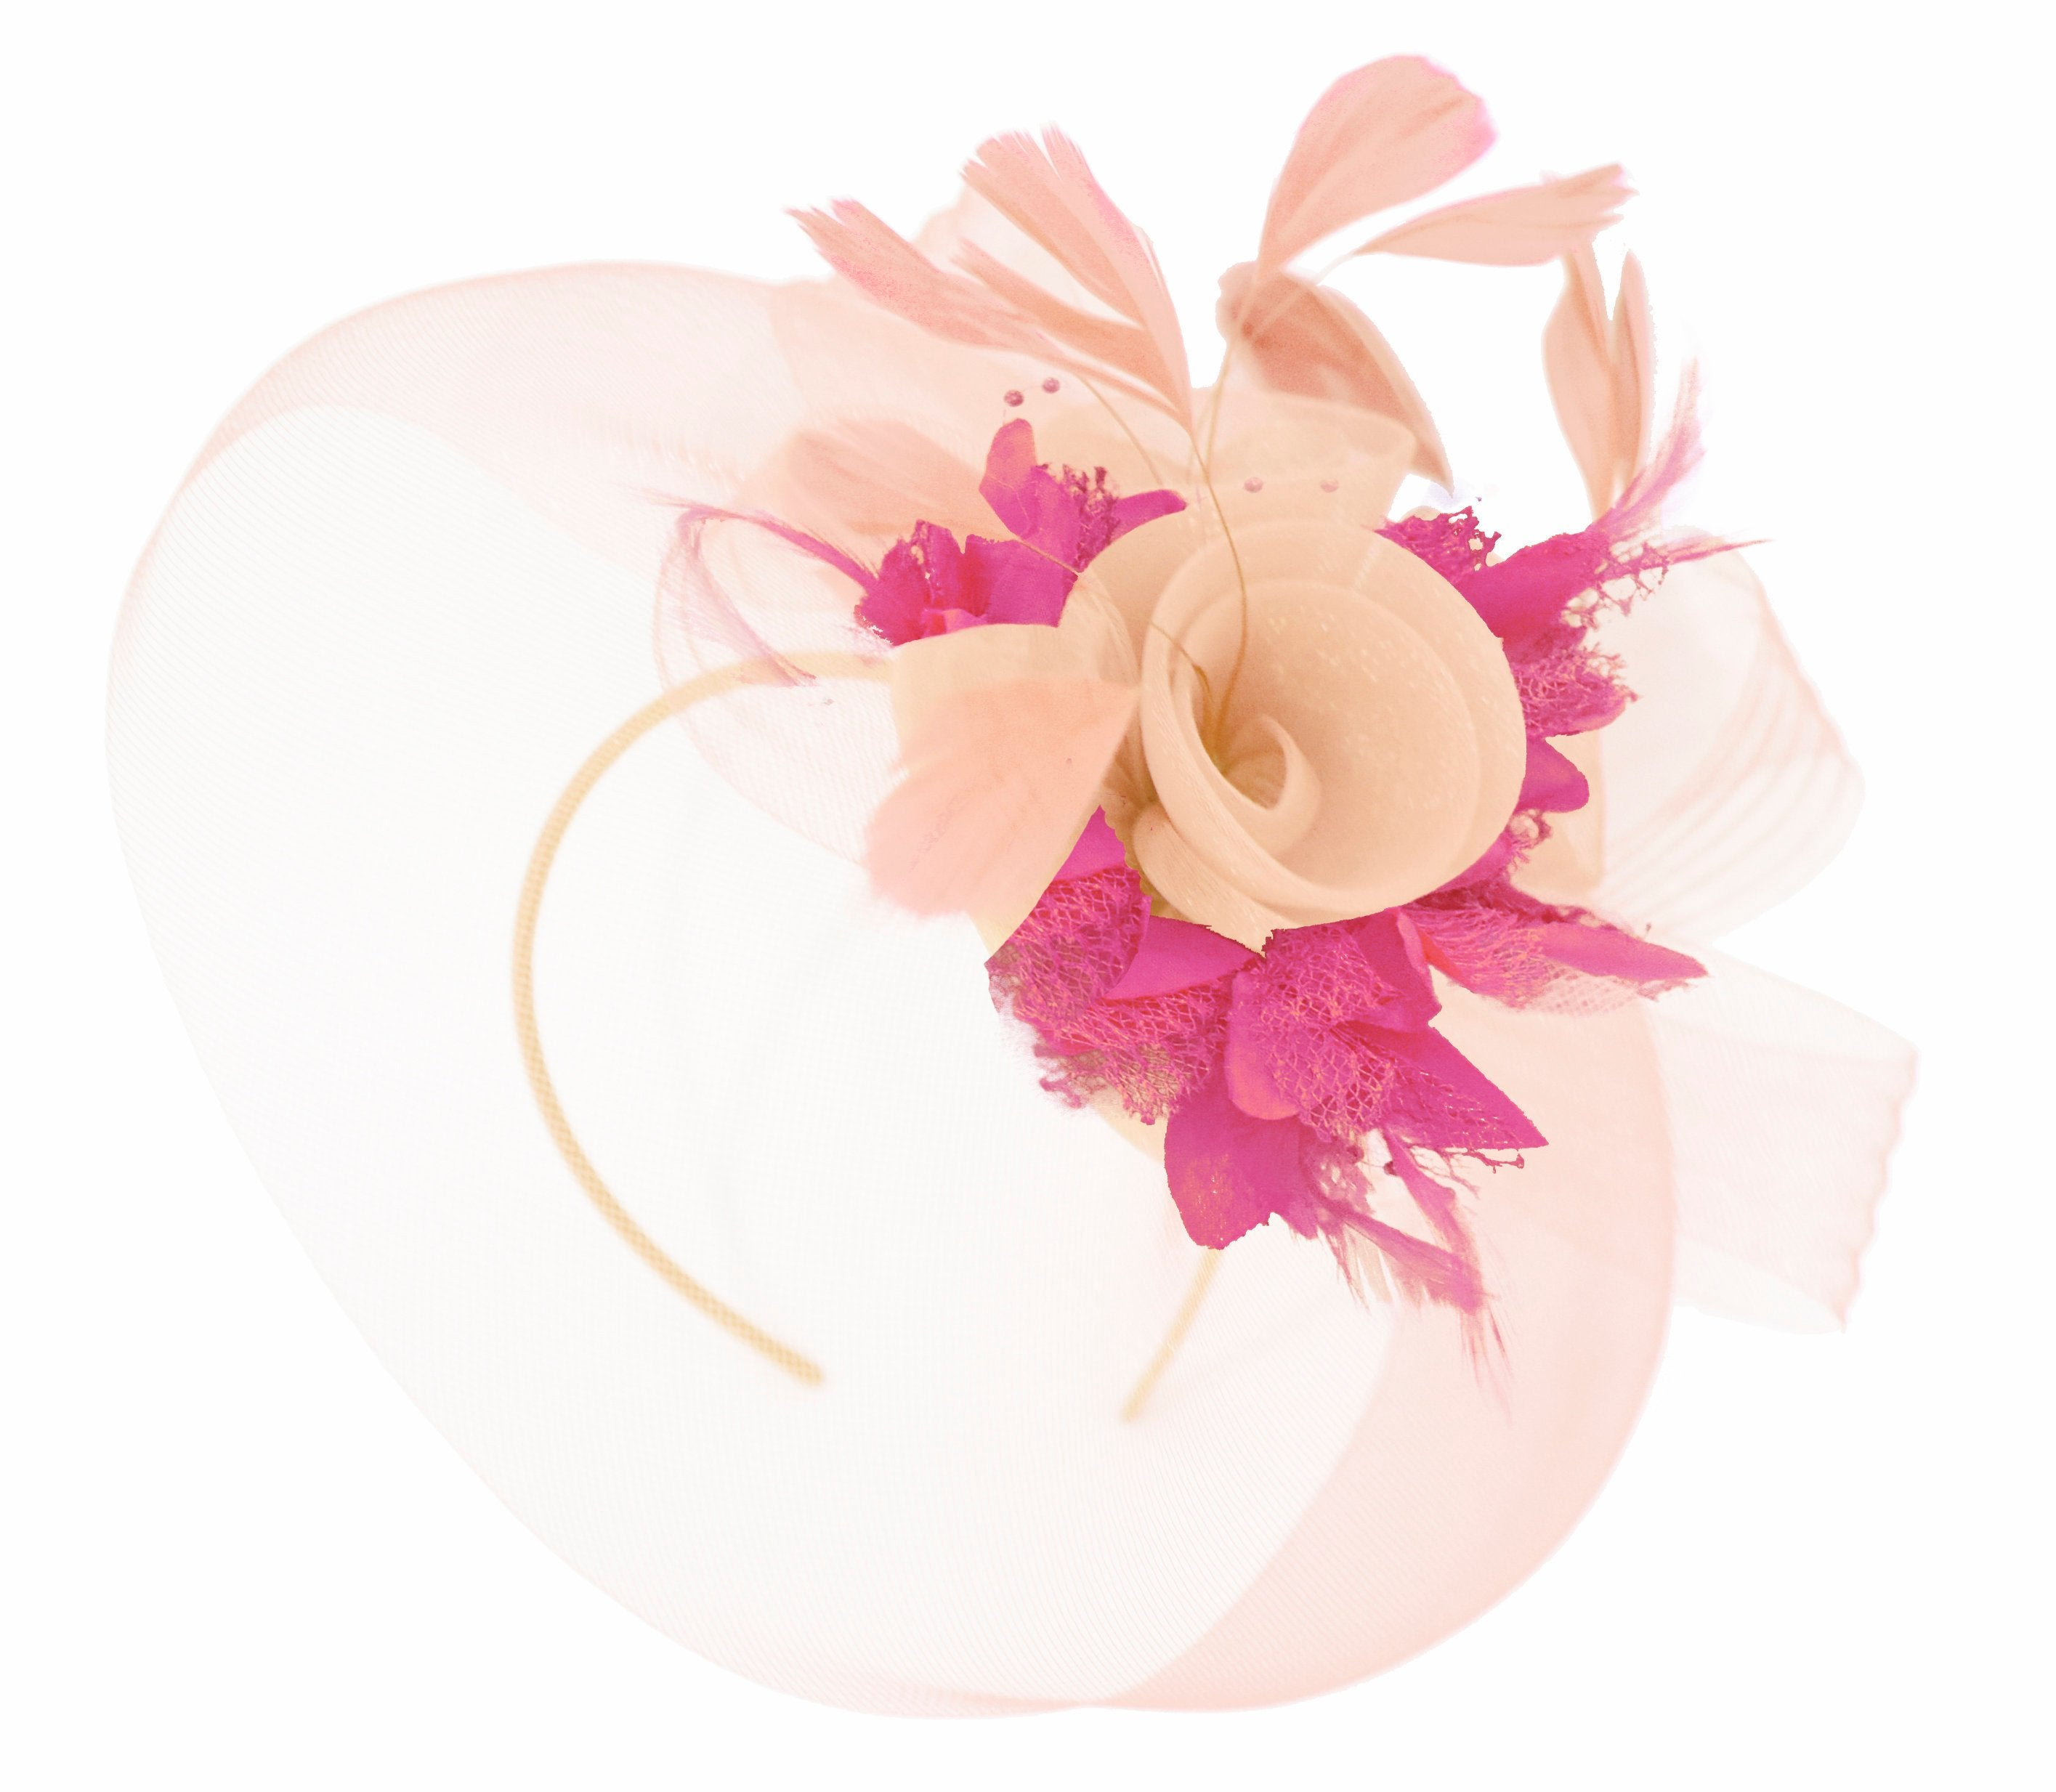 Caprilite Nude Pink Peach and Fuchsia Pink Fascinator Hat Veil Net Hair Clip Ascot Derby Races Wedding Headband Feather Flower